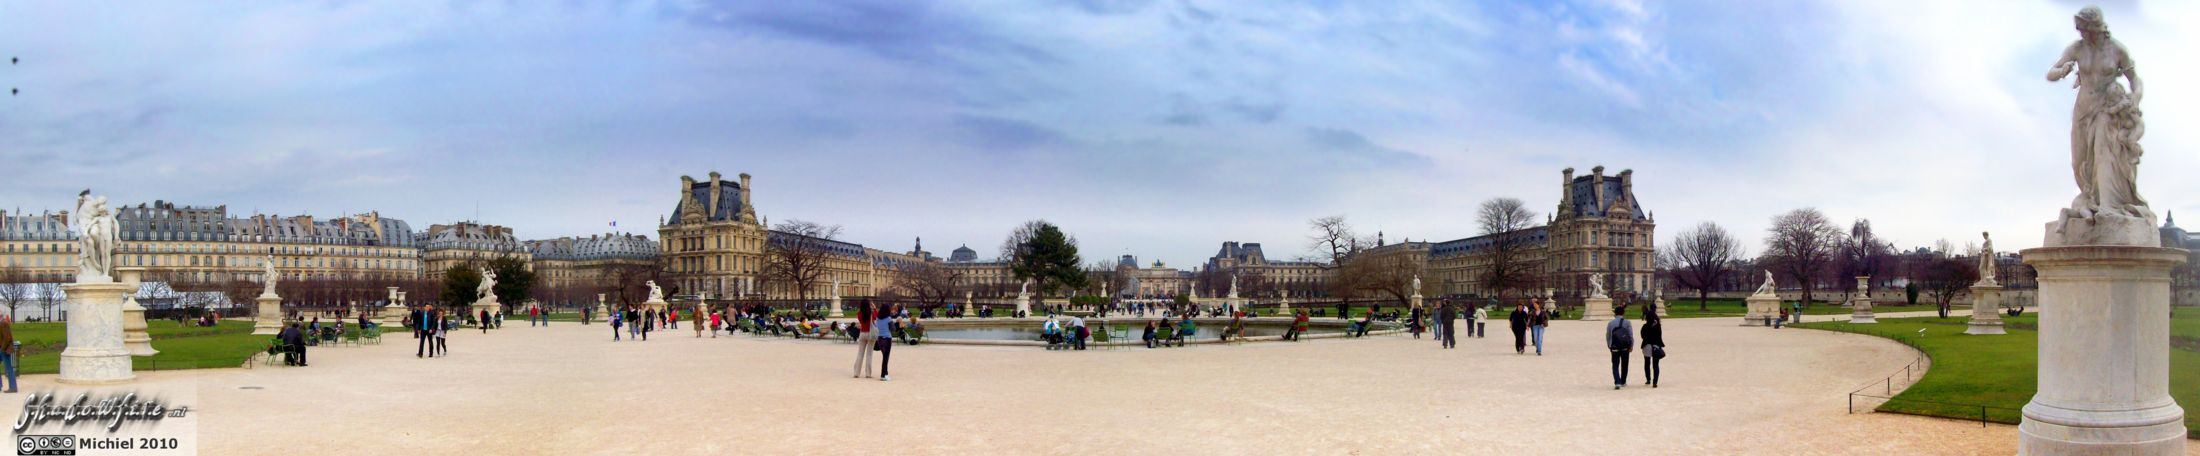 Jardin des Tuileries panorama Jardin des Tuileries, Louvre, Paris, France, Paris 2010,travel, photography,favorites, panoramas